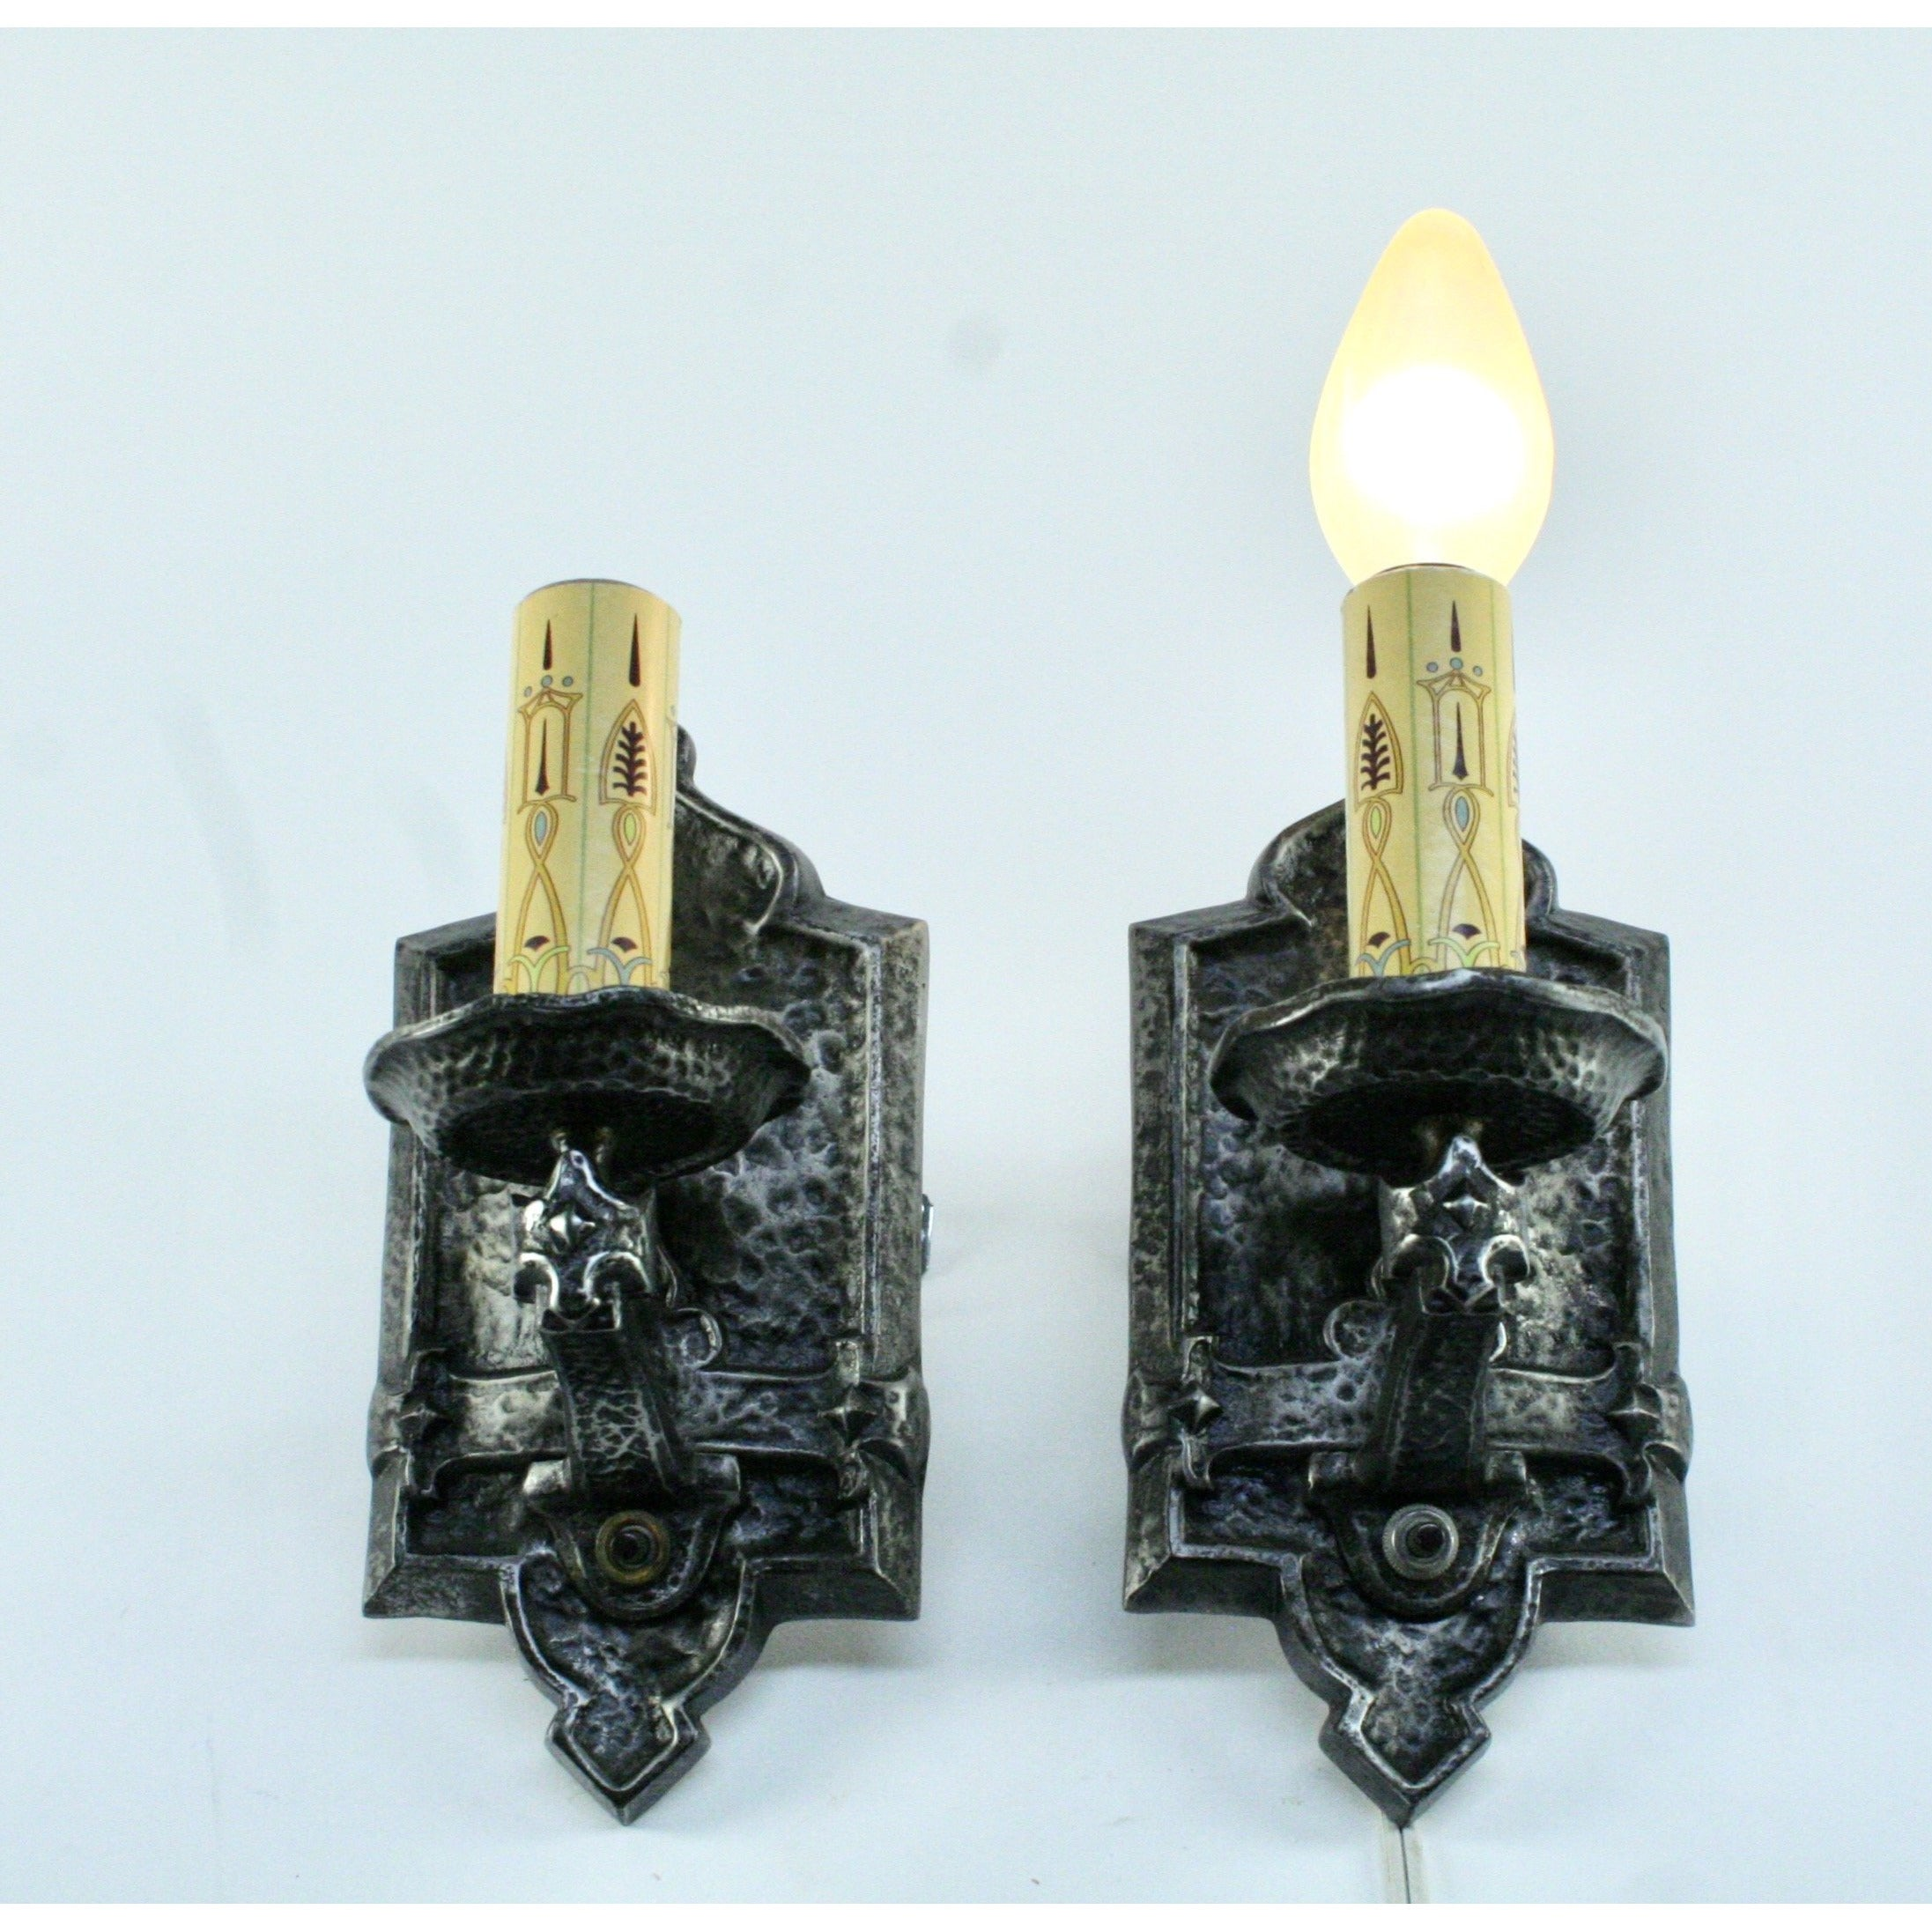 pair wall sconces by Halcolite